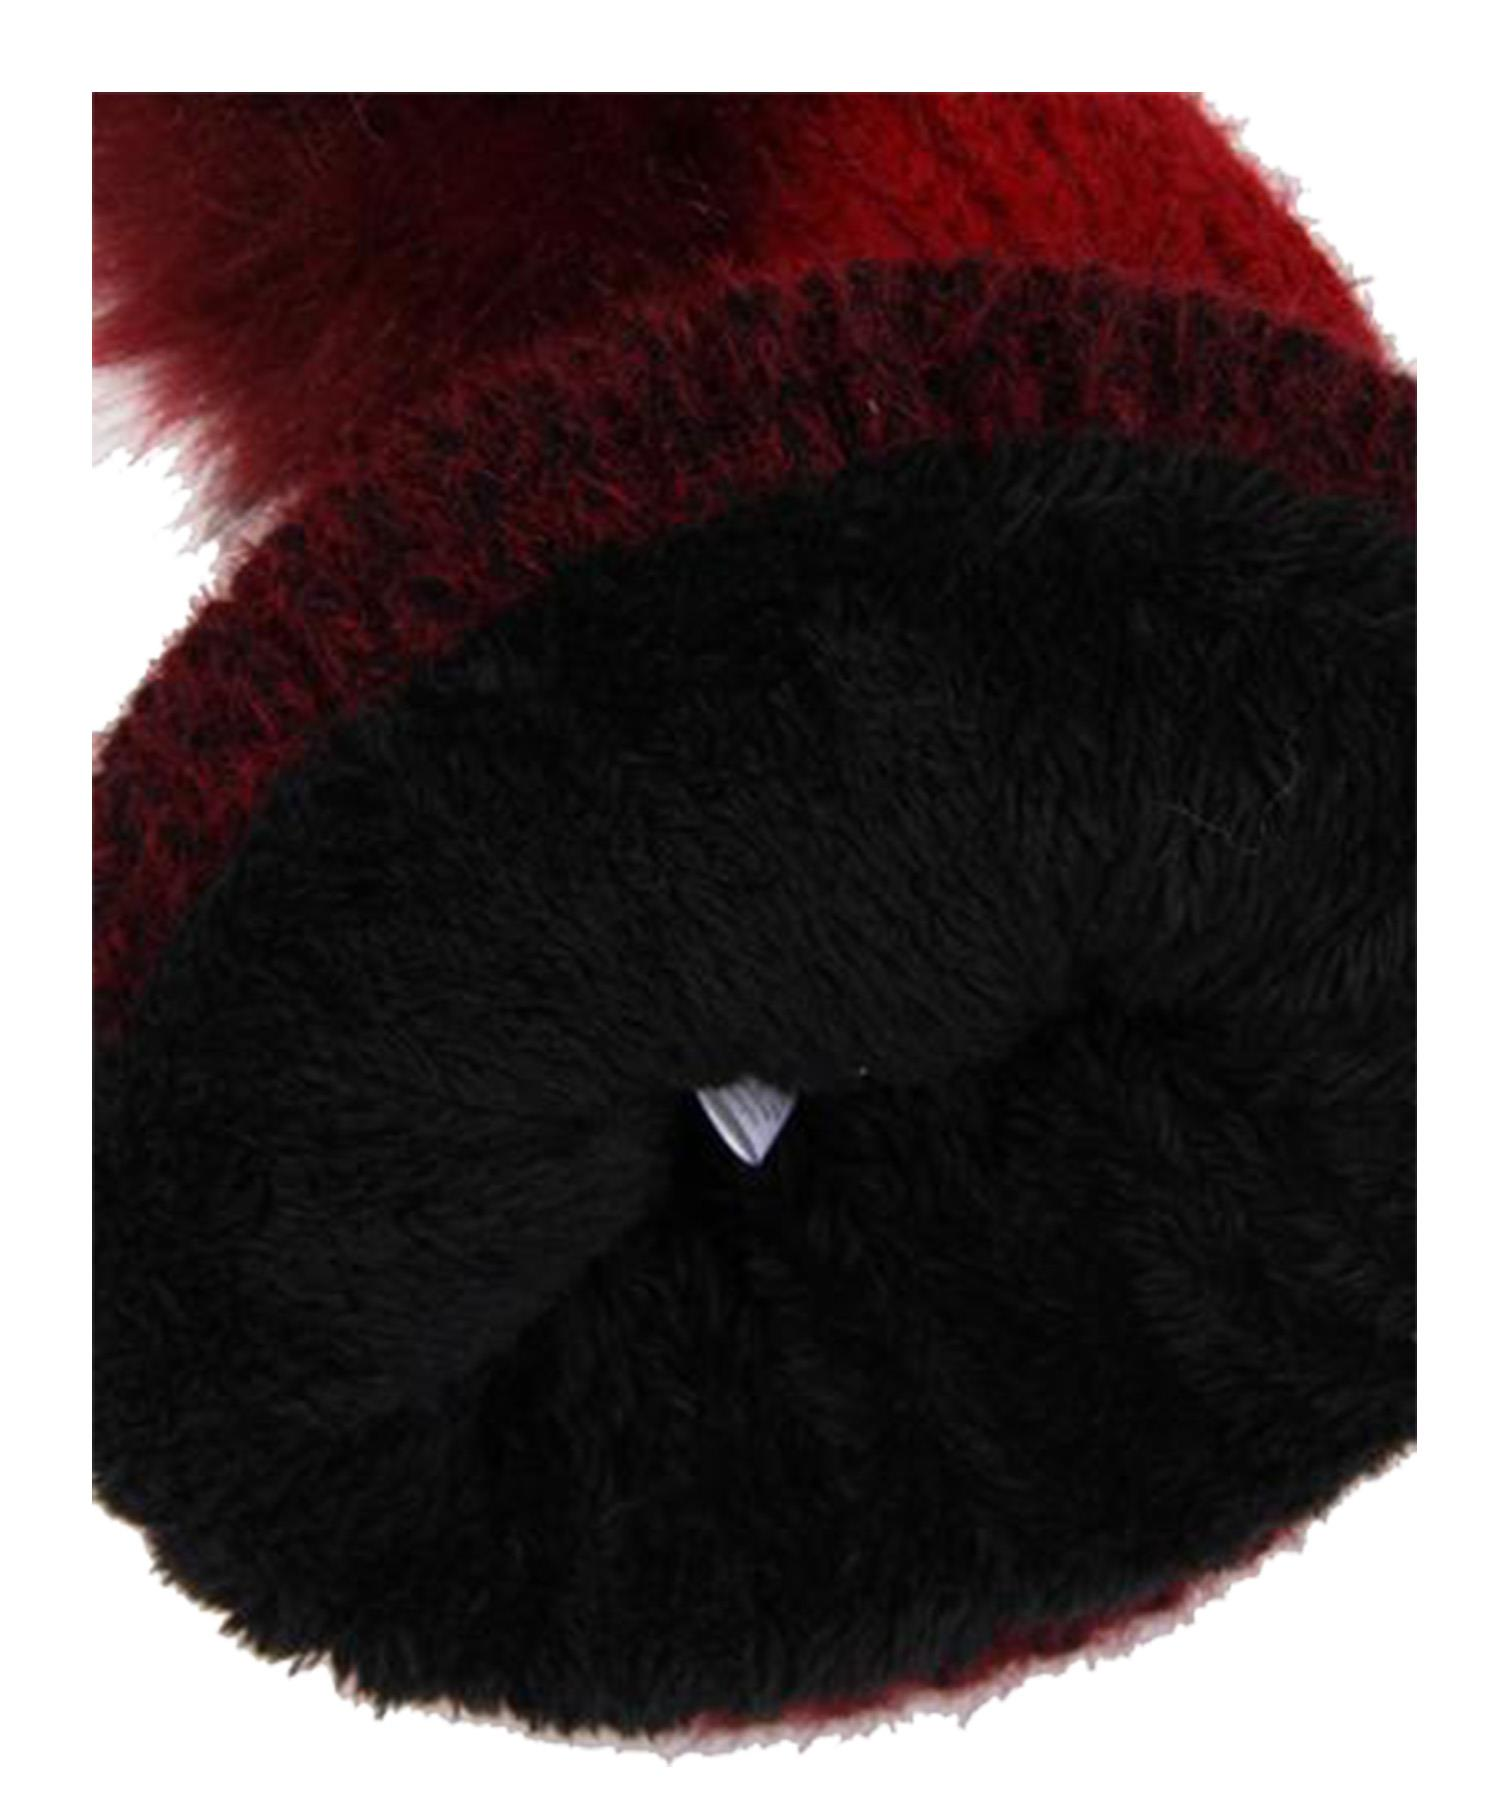 New-Ladies-Synthetic-Fur-Pom-Pom-Ombre-Shading-Fleece-Lined-Beanie-Hat thumbnail 4